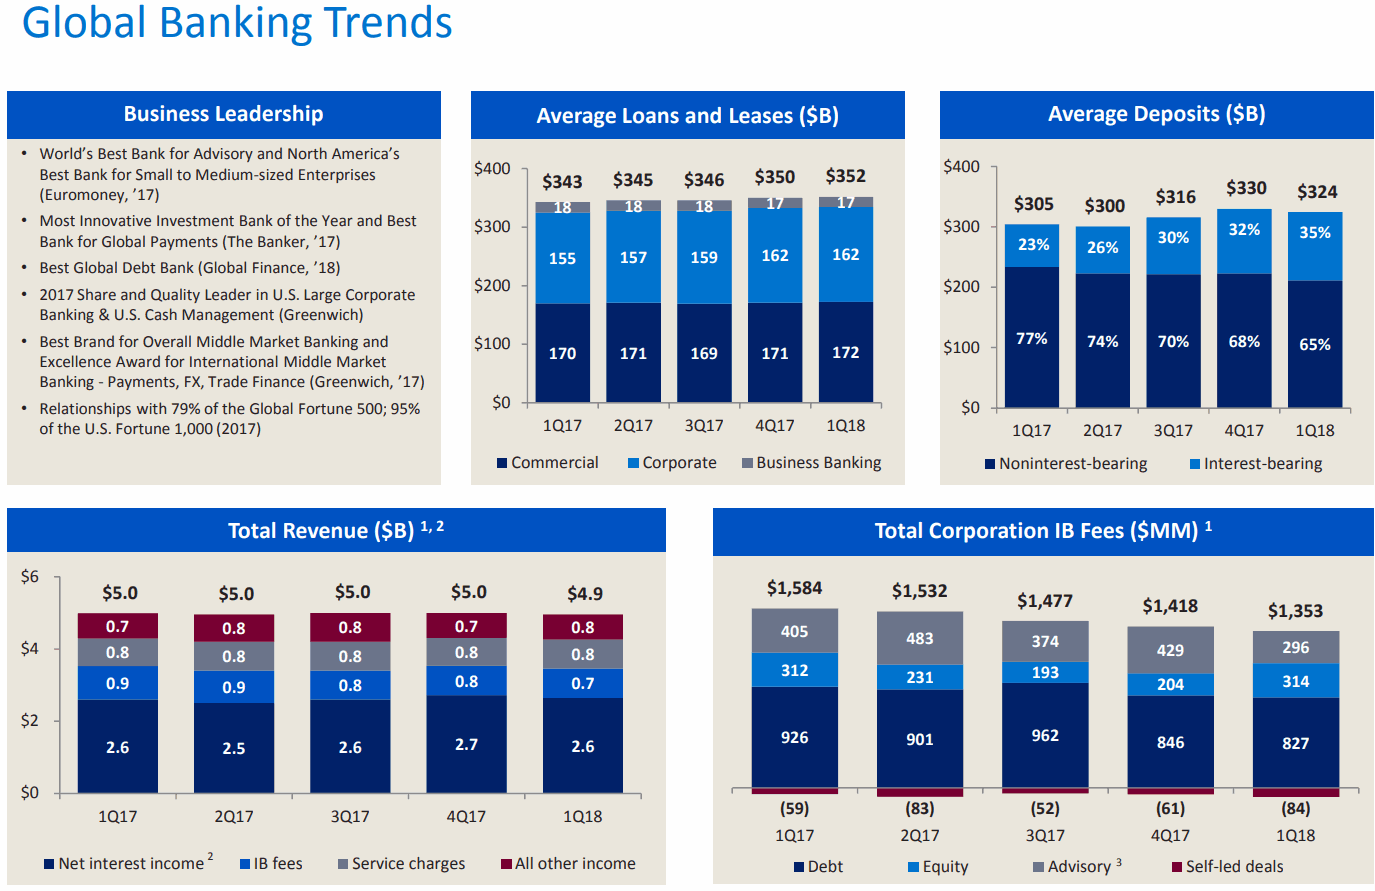 Bank-of-America-Global-Banking-Trends